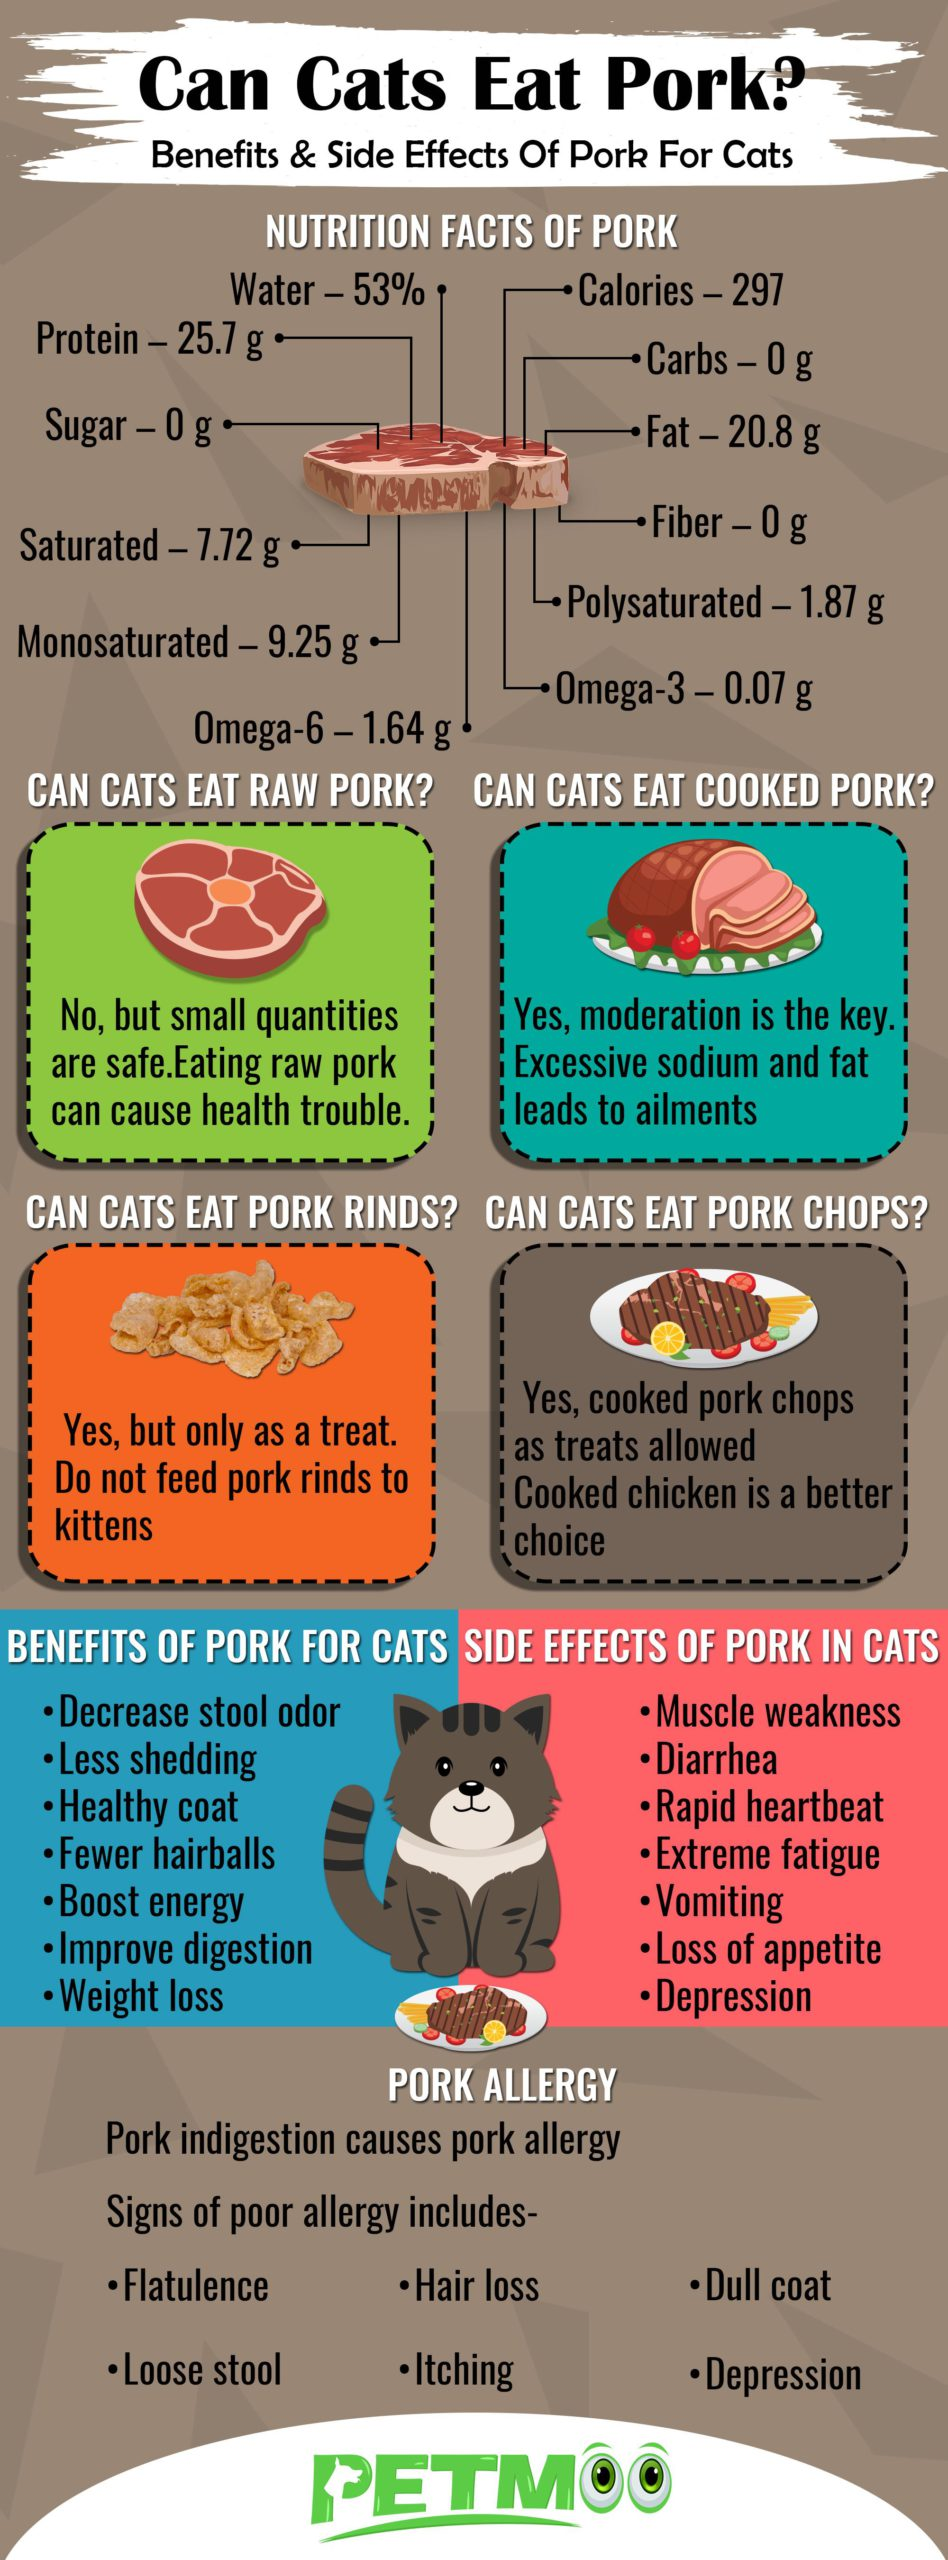 Can Cats Eat Pork Infographic